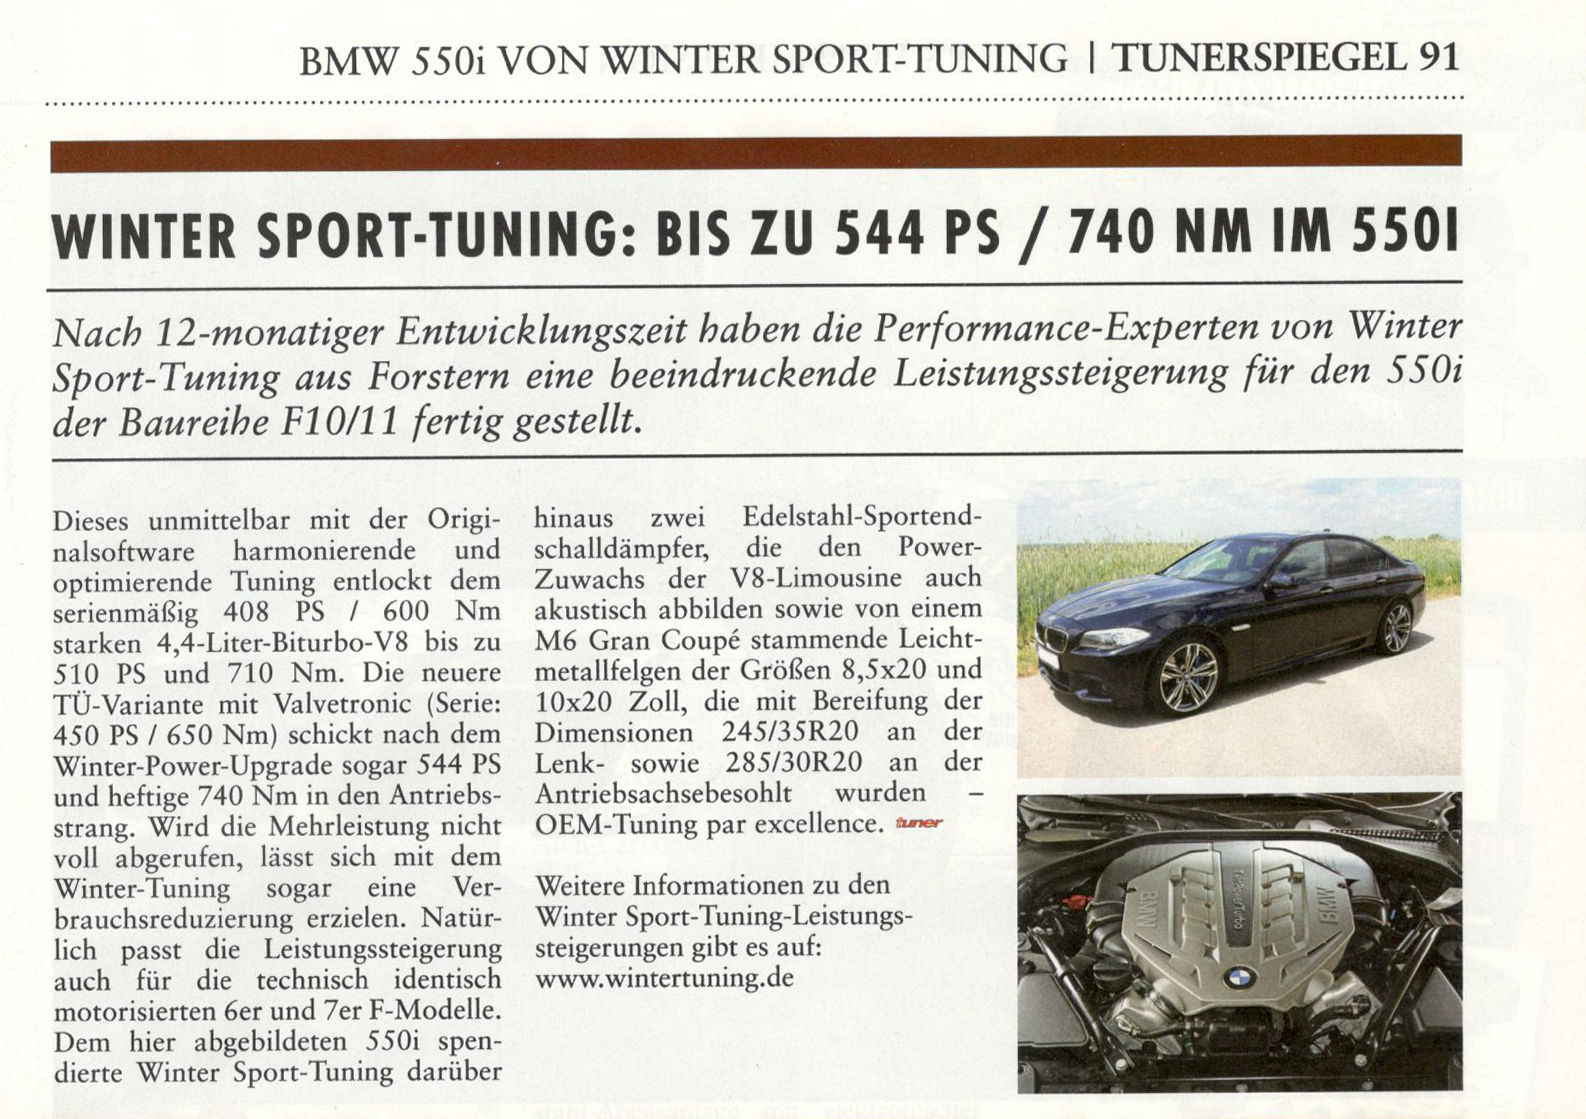 eurotuner 55oi winter